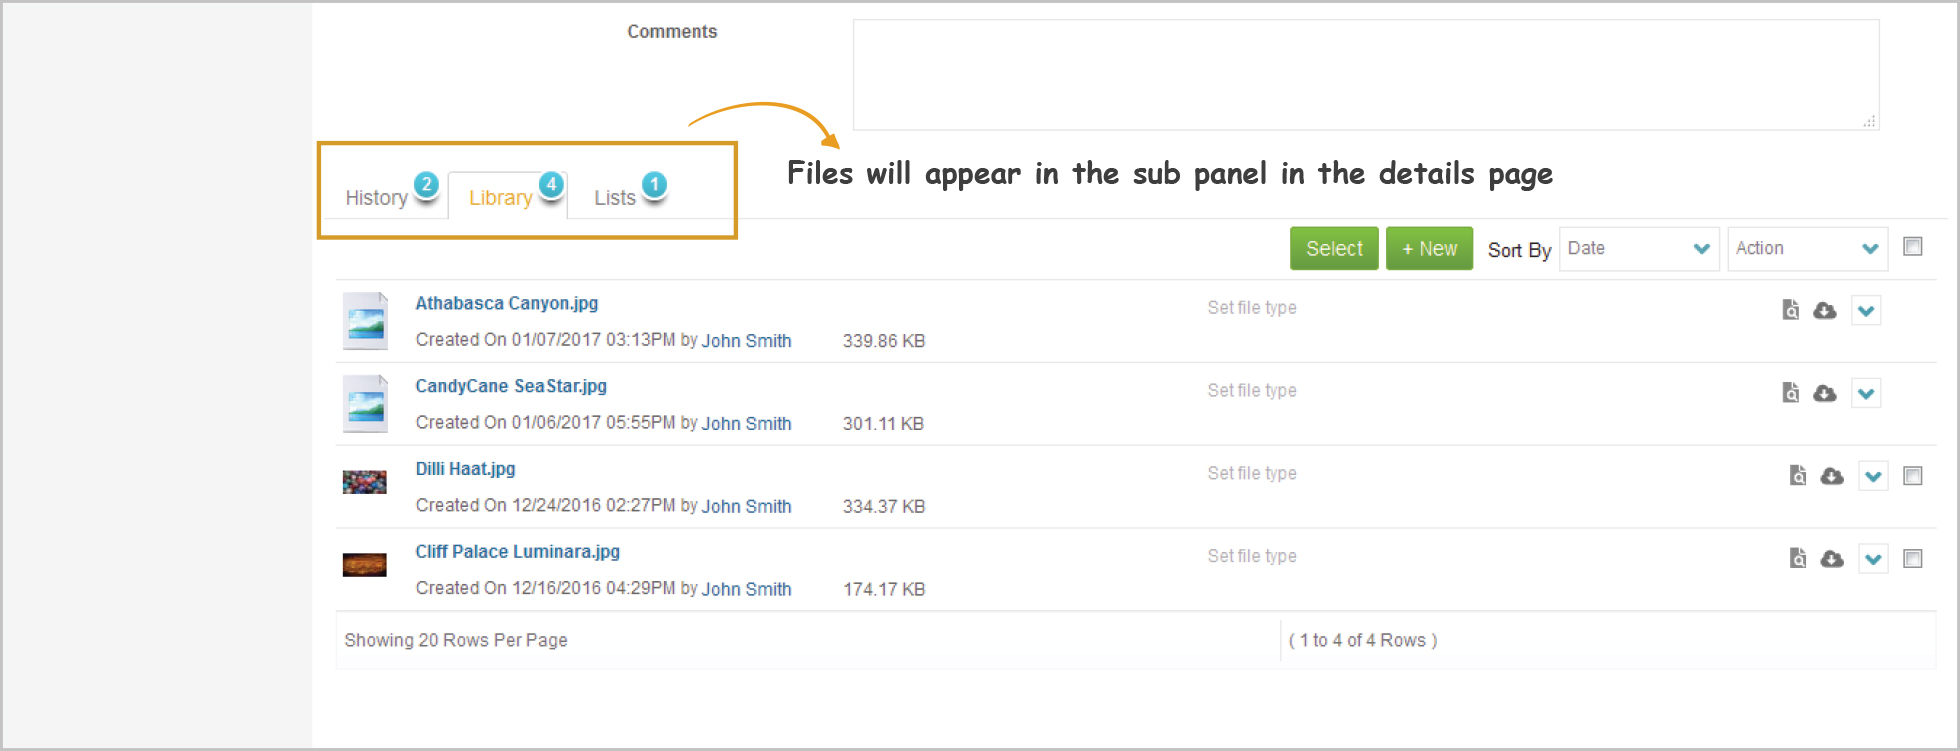 The attached BOX files will appear in the sub panel in the details page